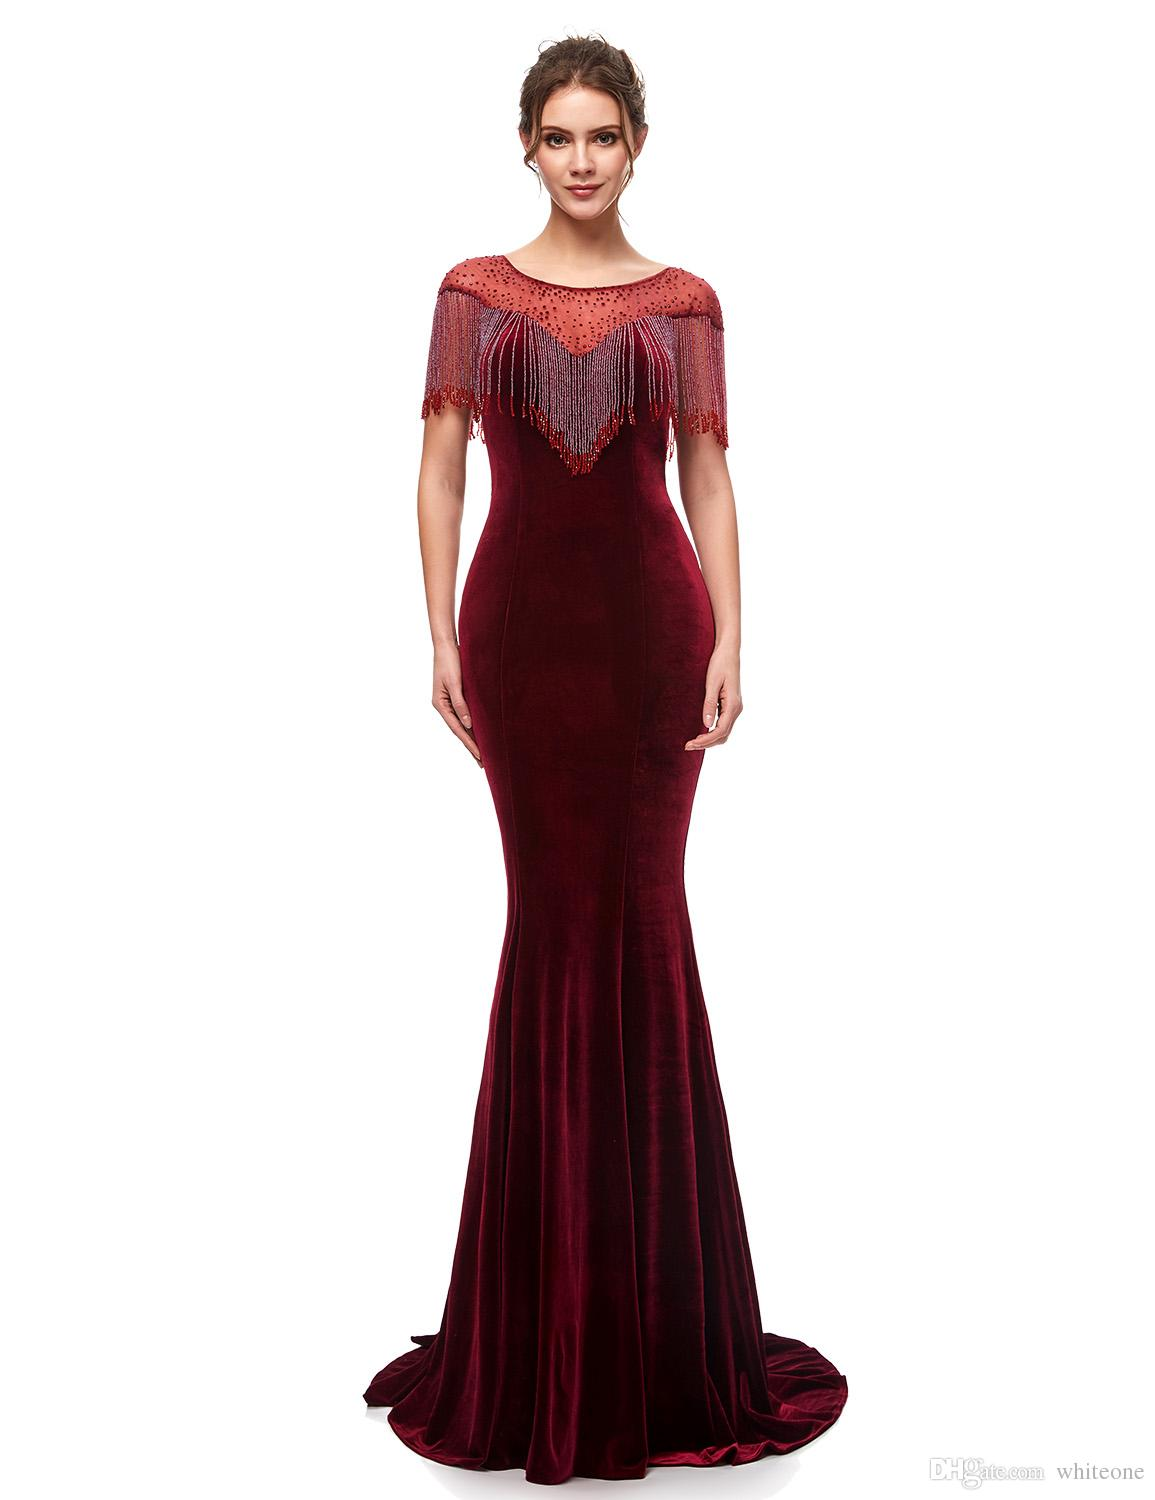 2019 New Stylish Evening Dresses Elegant Velvet With Tassel Formal Long  Evening Gowns Floor Length Pron Party Gowns Robe De Soiree 5400 Evening  Dresses Maxi ... 912f40611f99